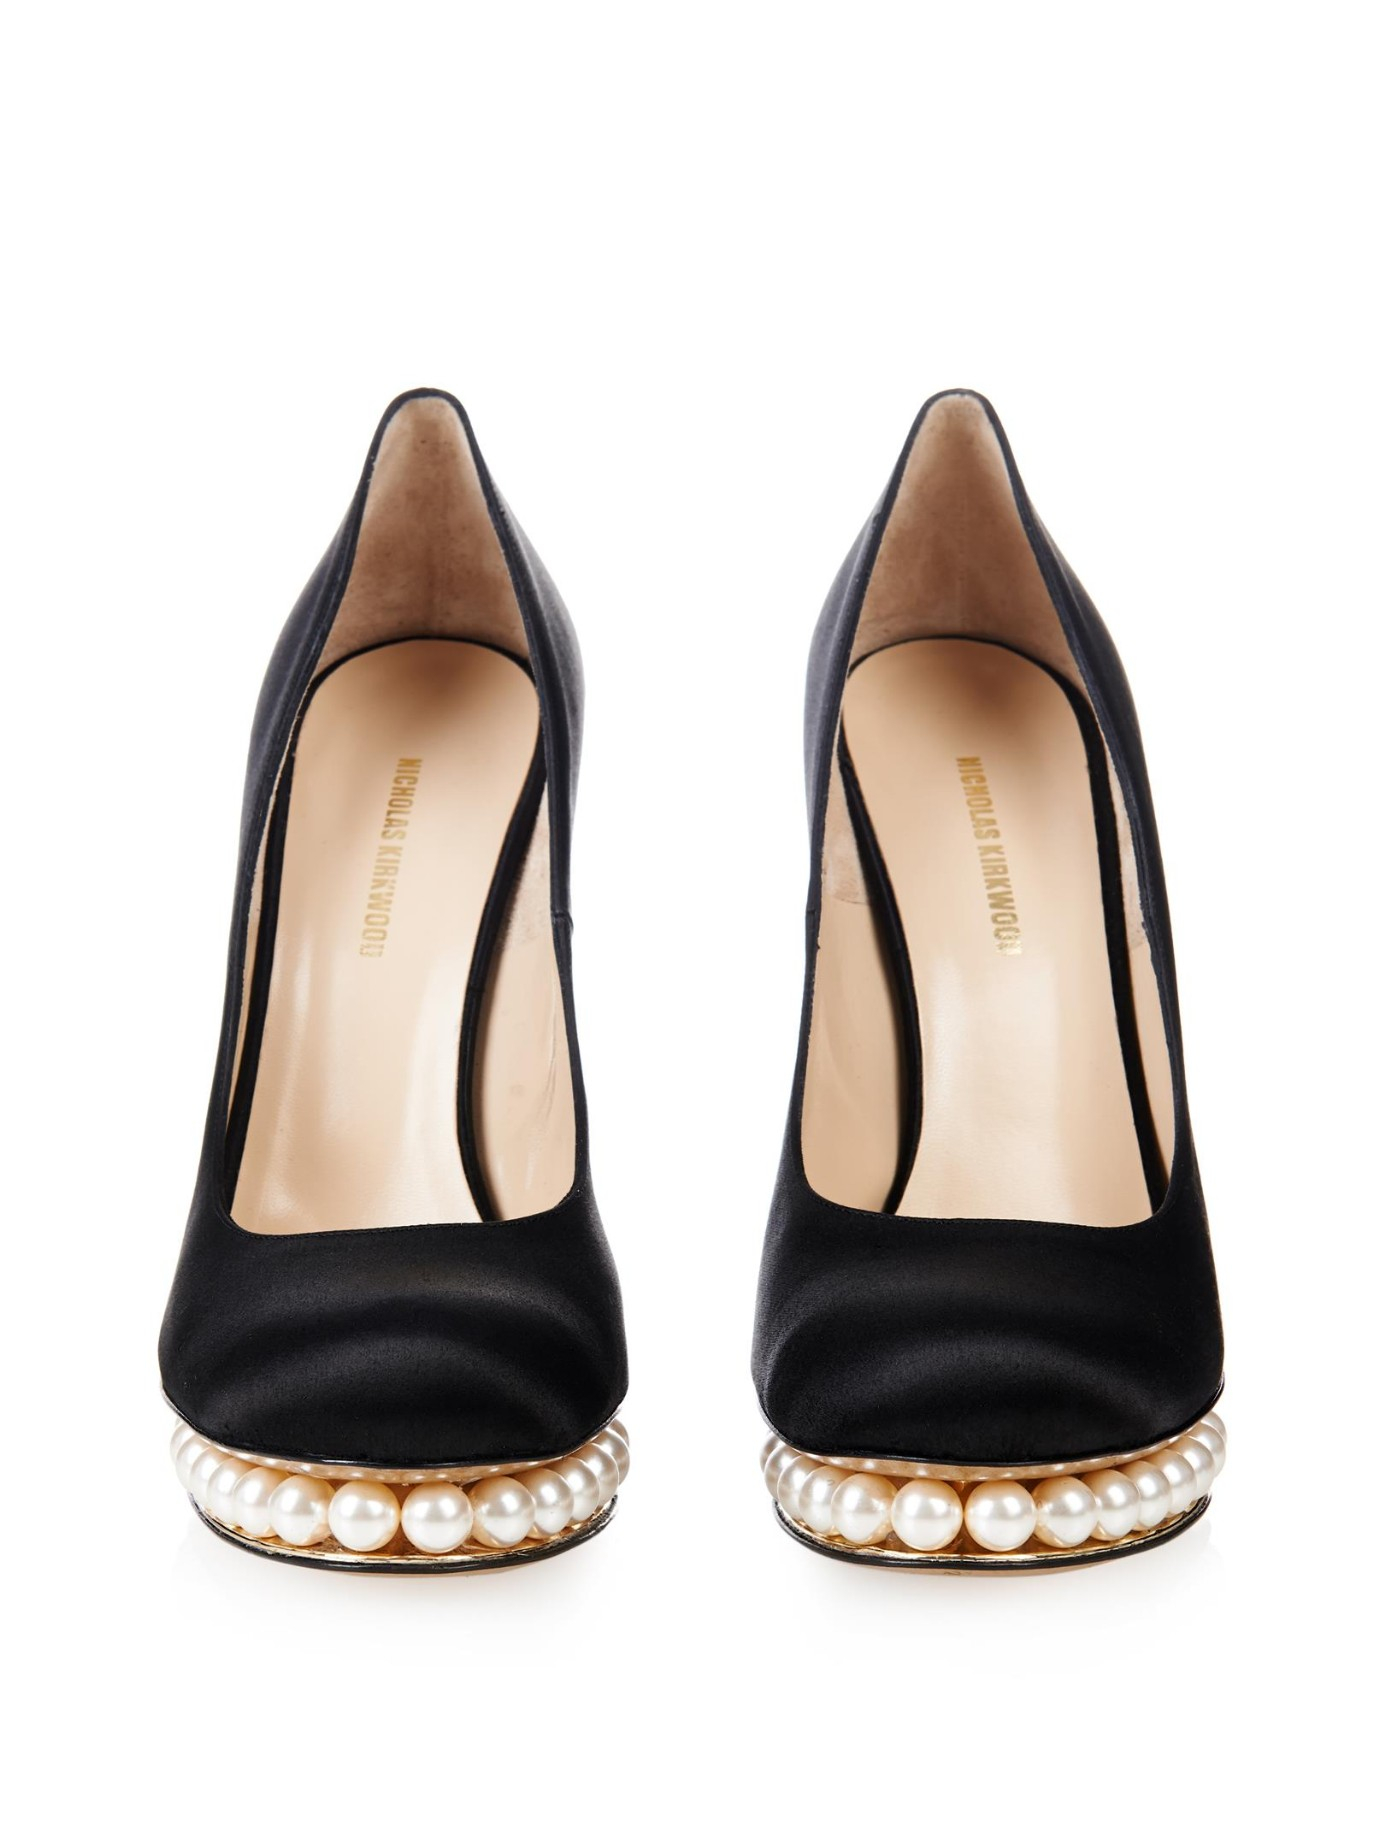 Nicholas Kirkwood Casati Pearl leather pumps